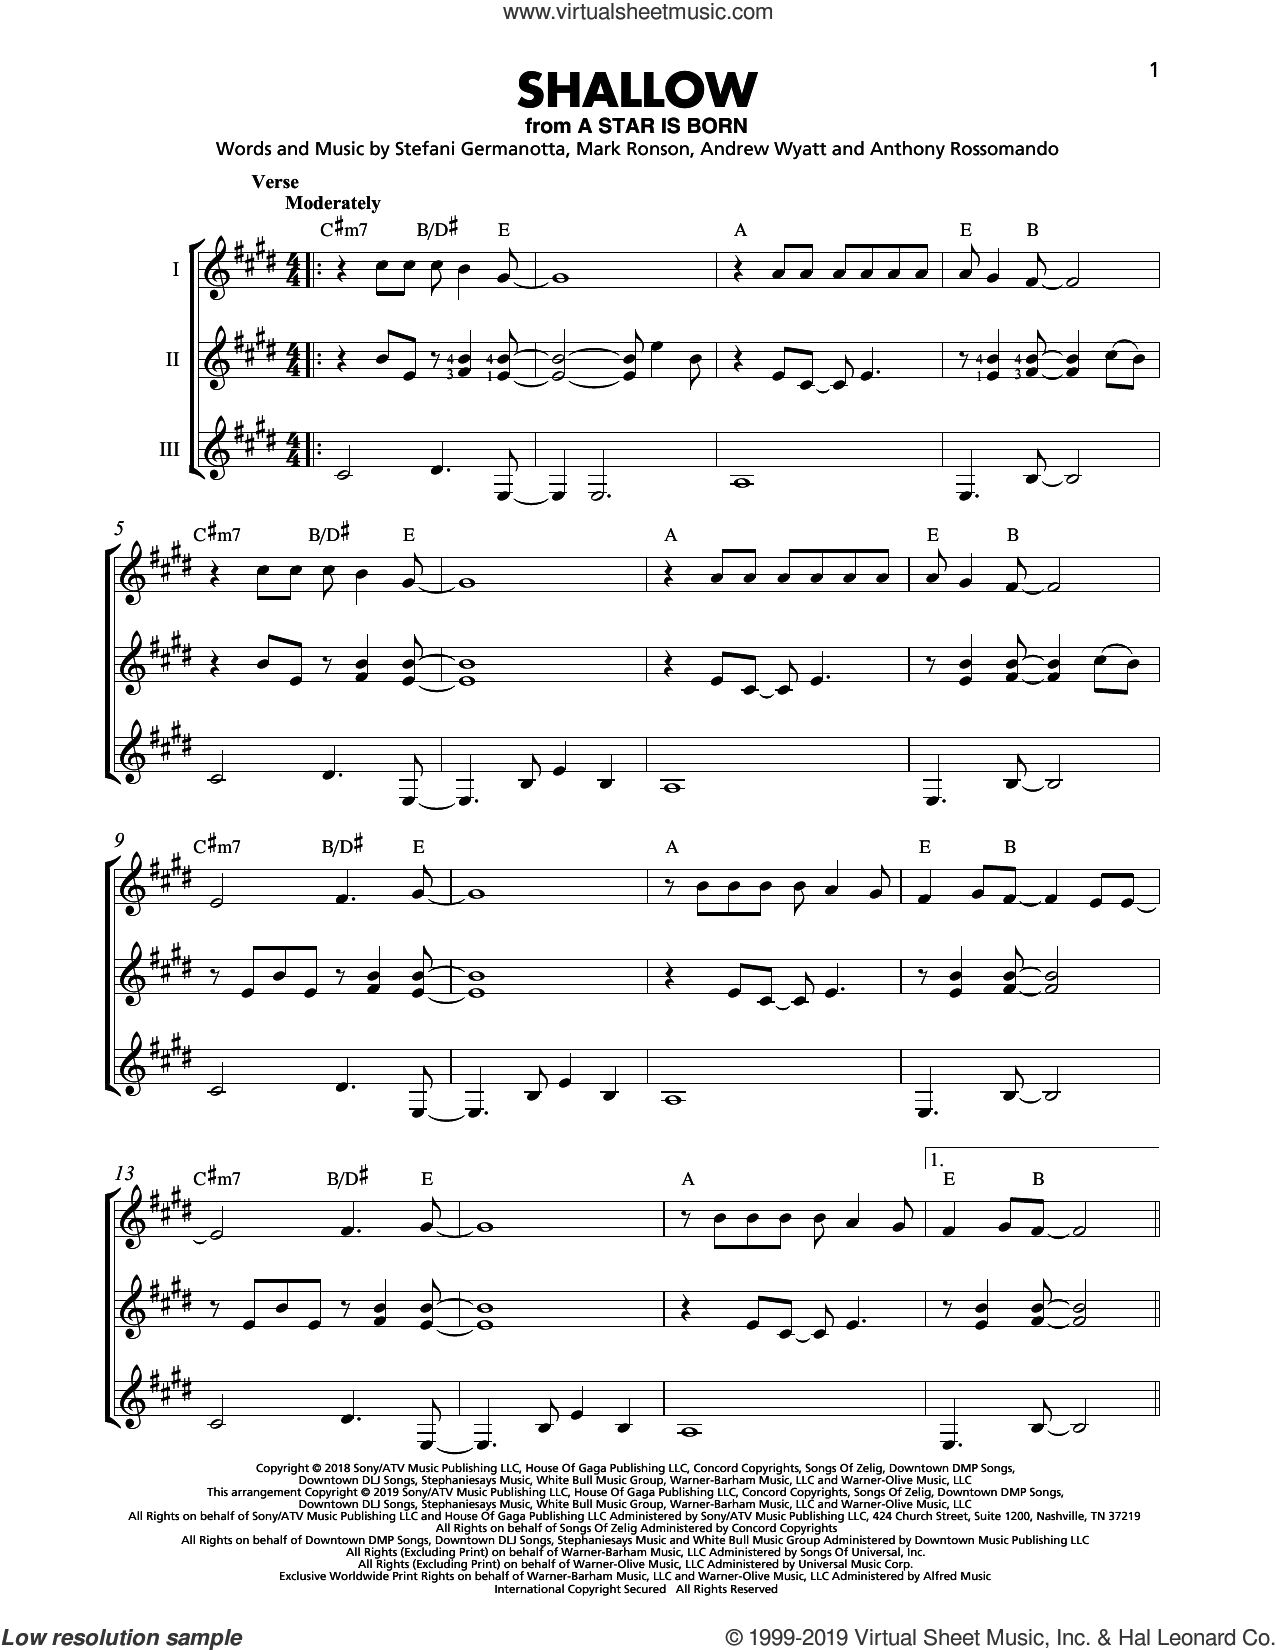 Shallow (from A Star Is Born) sheet music for guitar ensemble by Lady Gaga & Bradley Cooper, Bradley Cooper, Andrew Wyatt, Anthony Rossomando, Lady Gaga and Mark Ronson, intermediate skill level